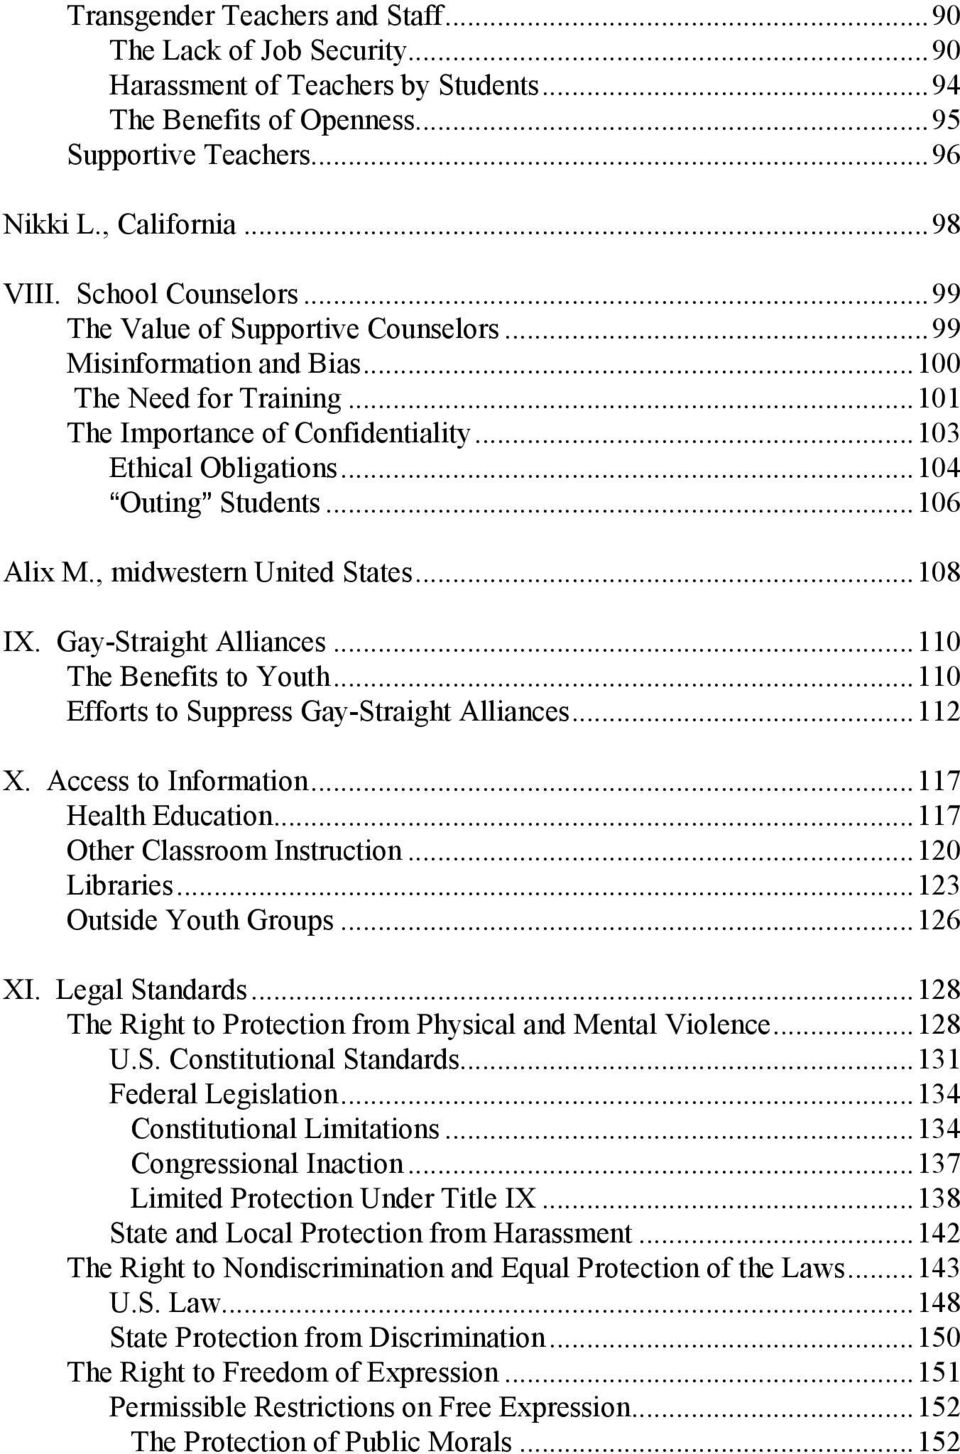 ..104 AOuting@ Students...106 Alix M., midwestern United States...108 IX. Gay-Straight Alliances...110 The Benefits to Youth...110 Efforts to Suppress Gay-Straight Alliances...112 X.